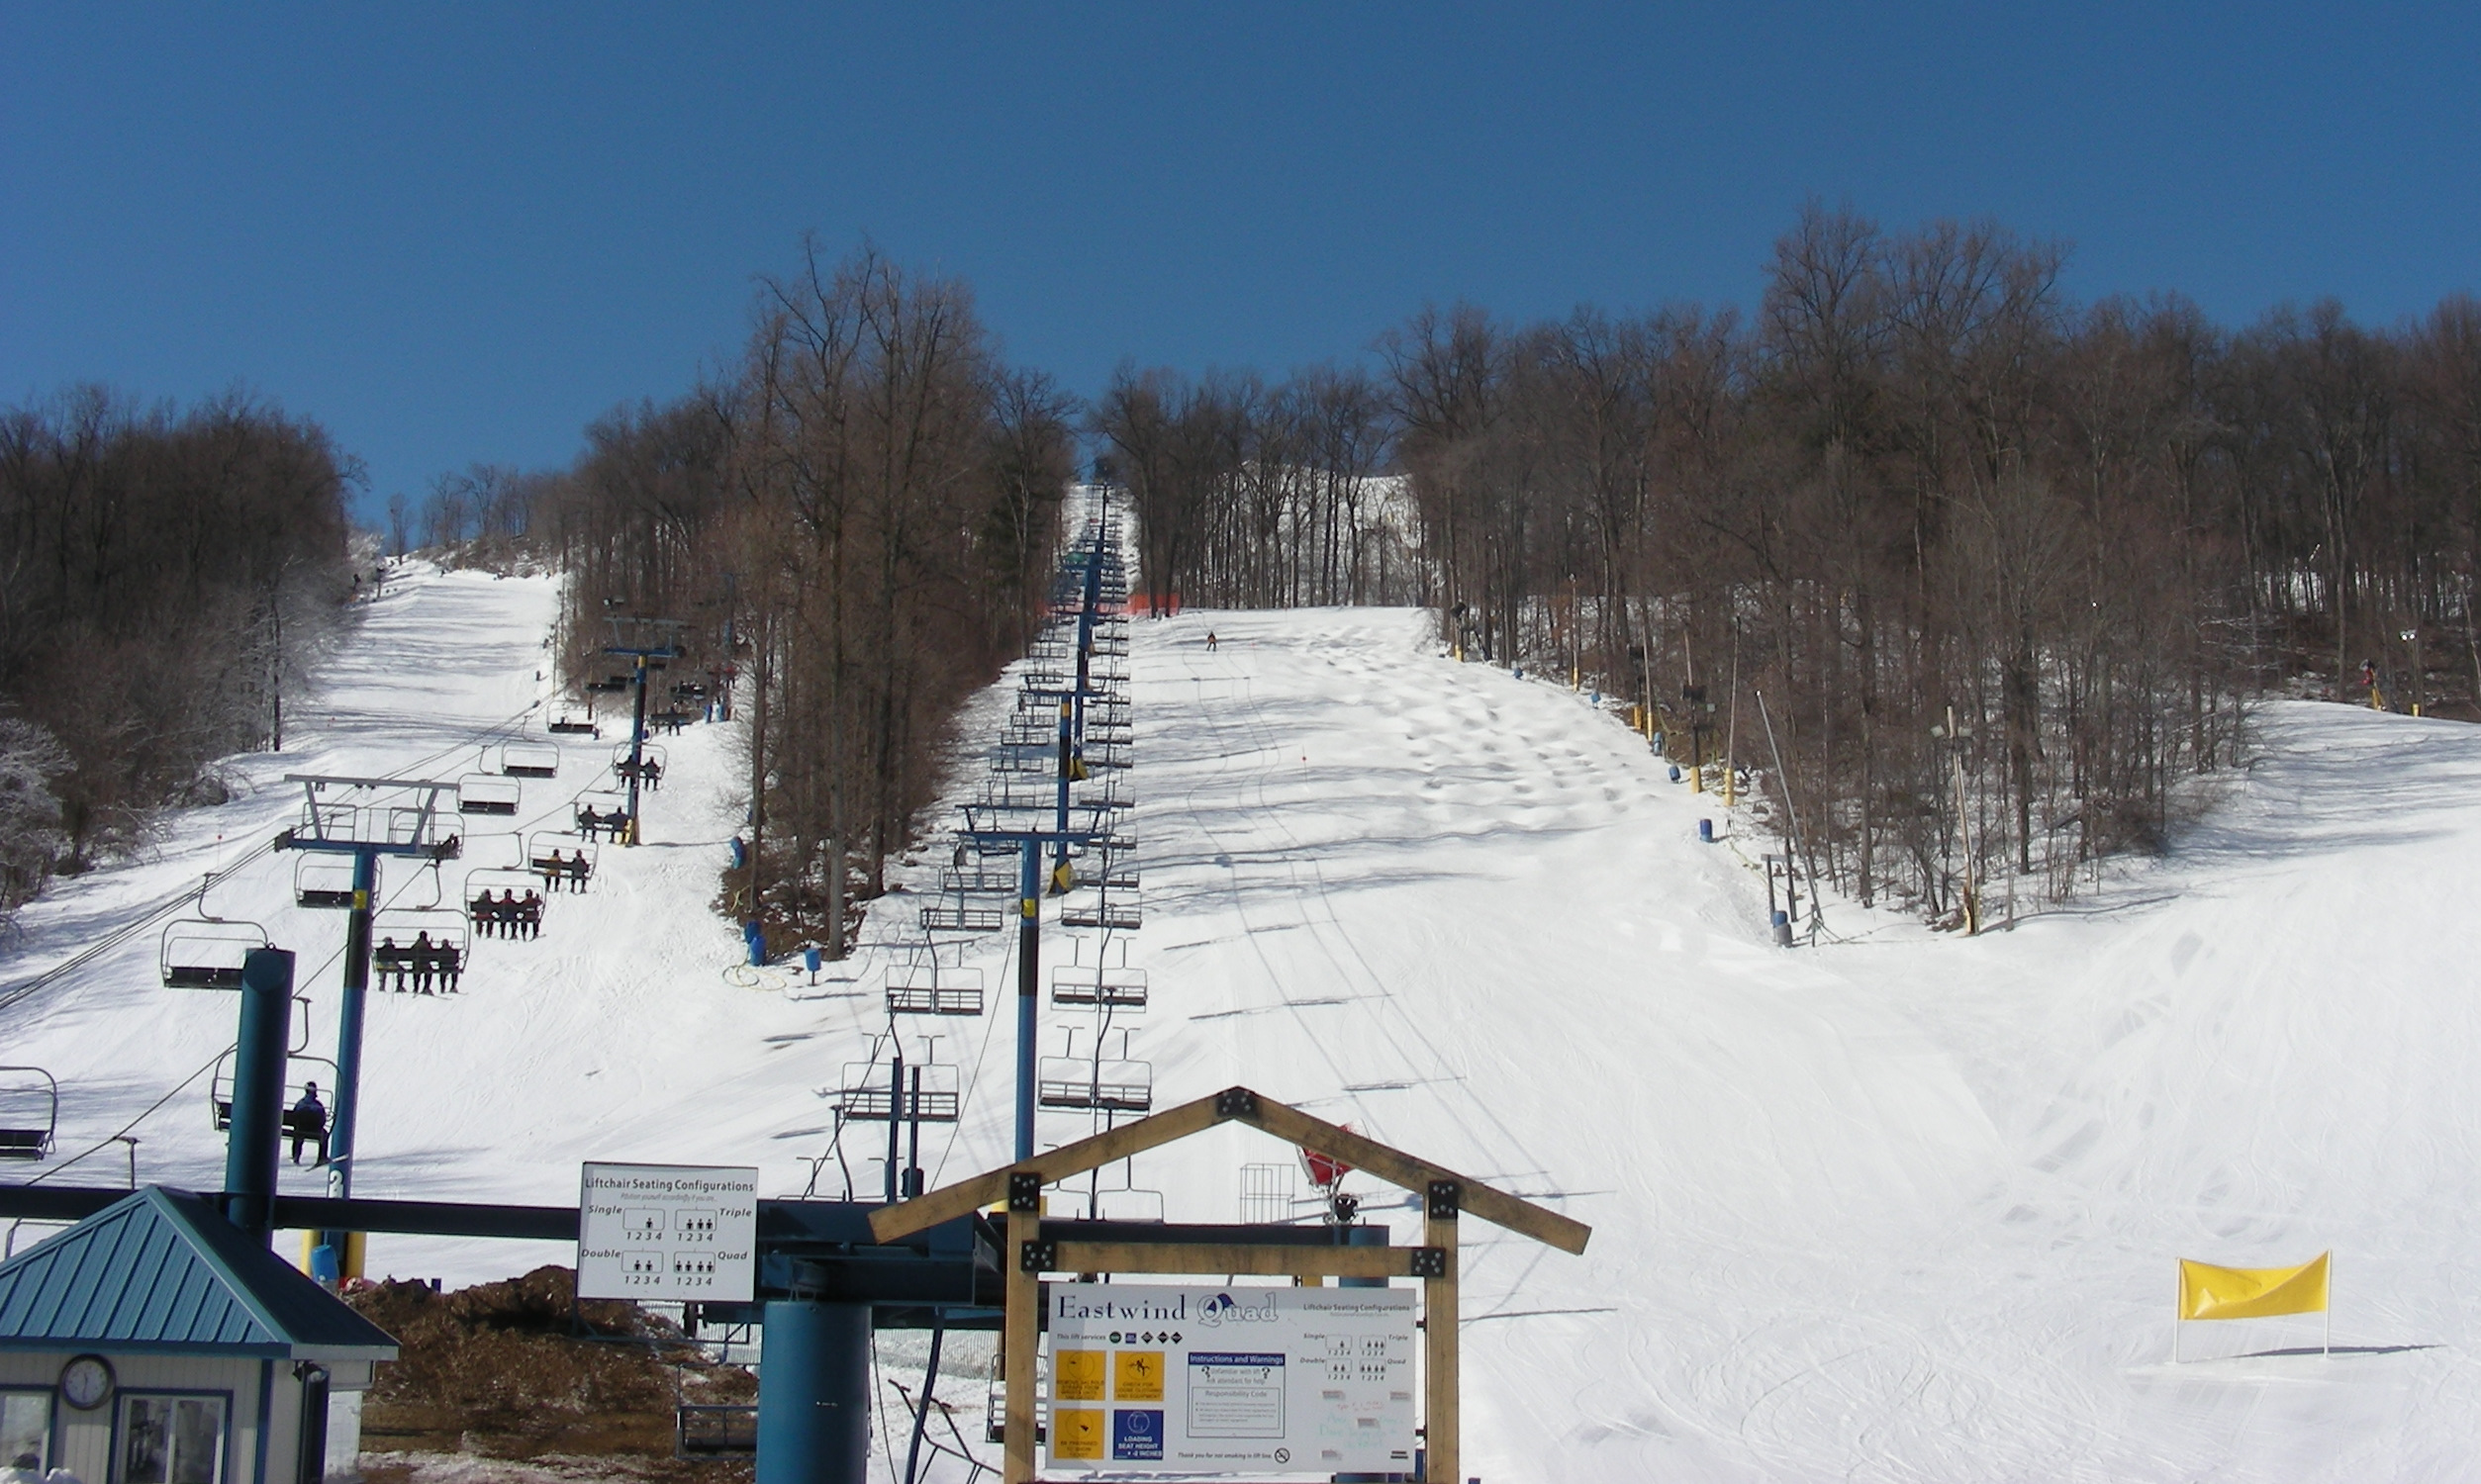 file:liberty mountain resort back - wikimedia commons